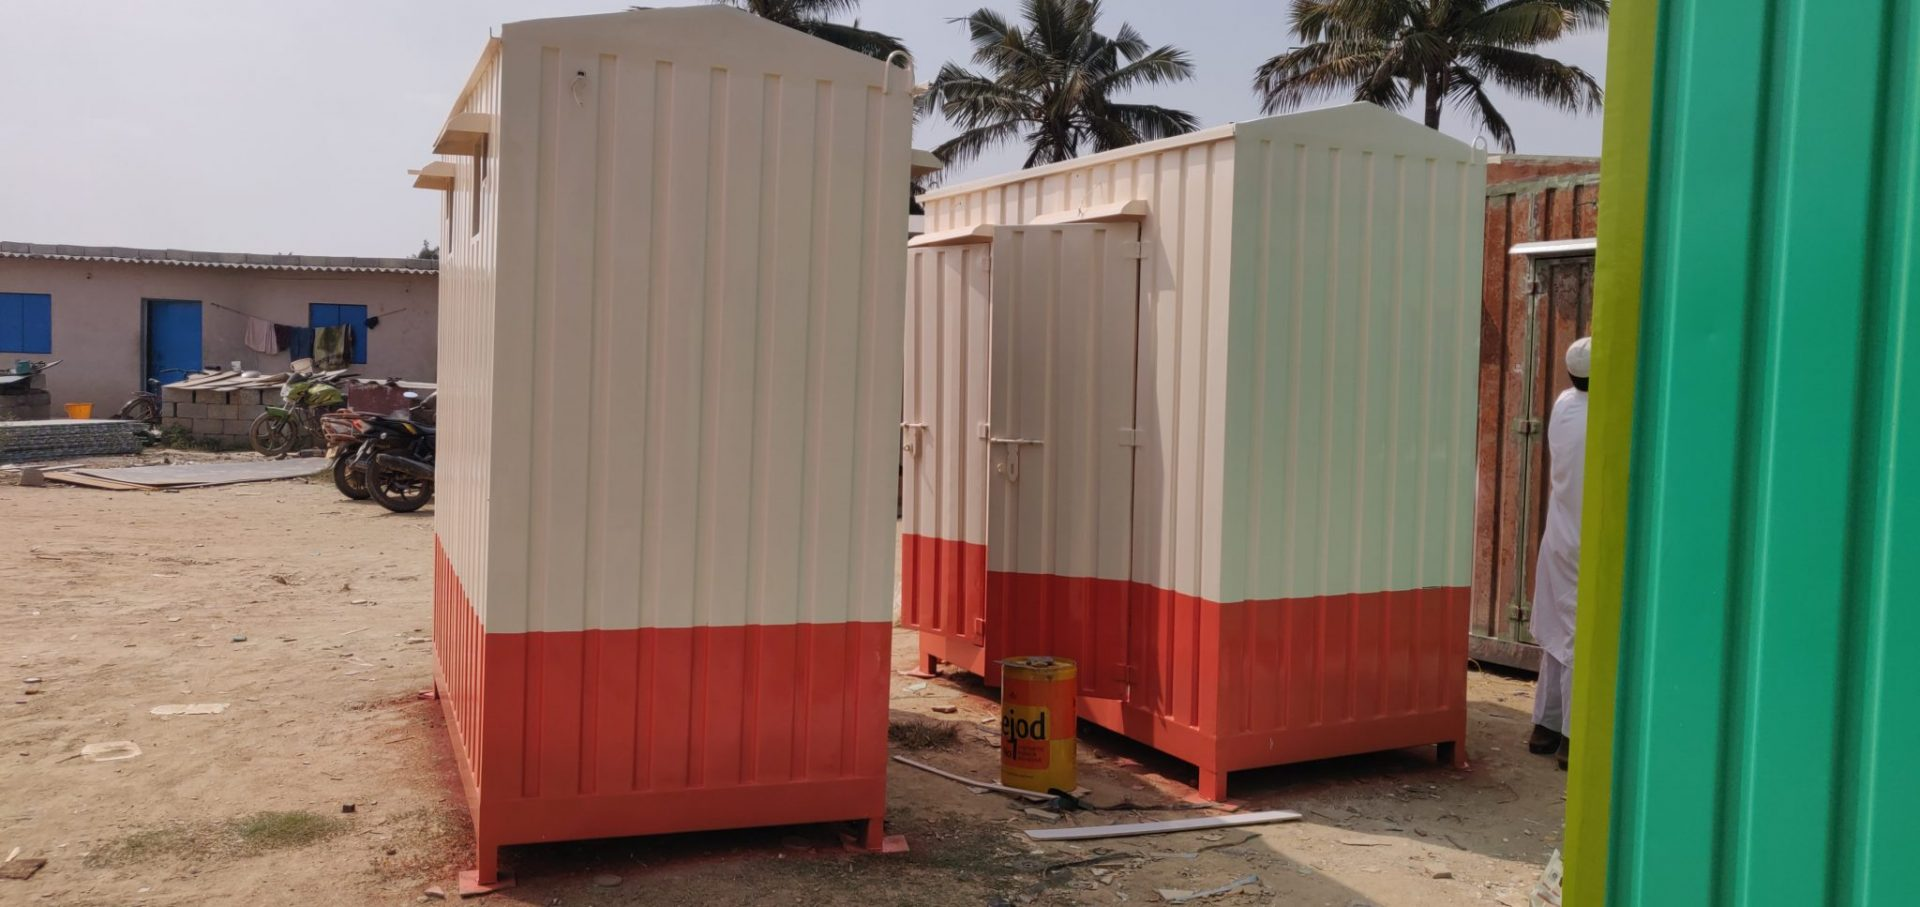 Potable toilets on rent